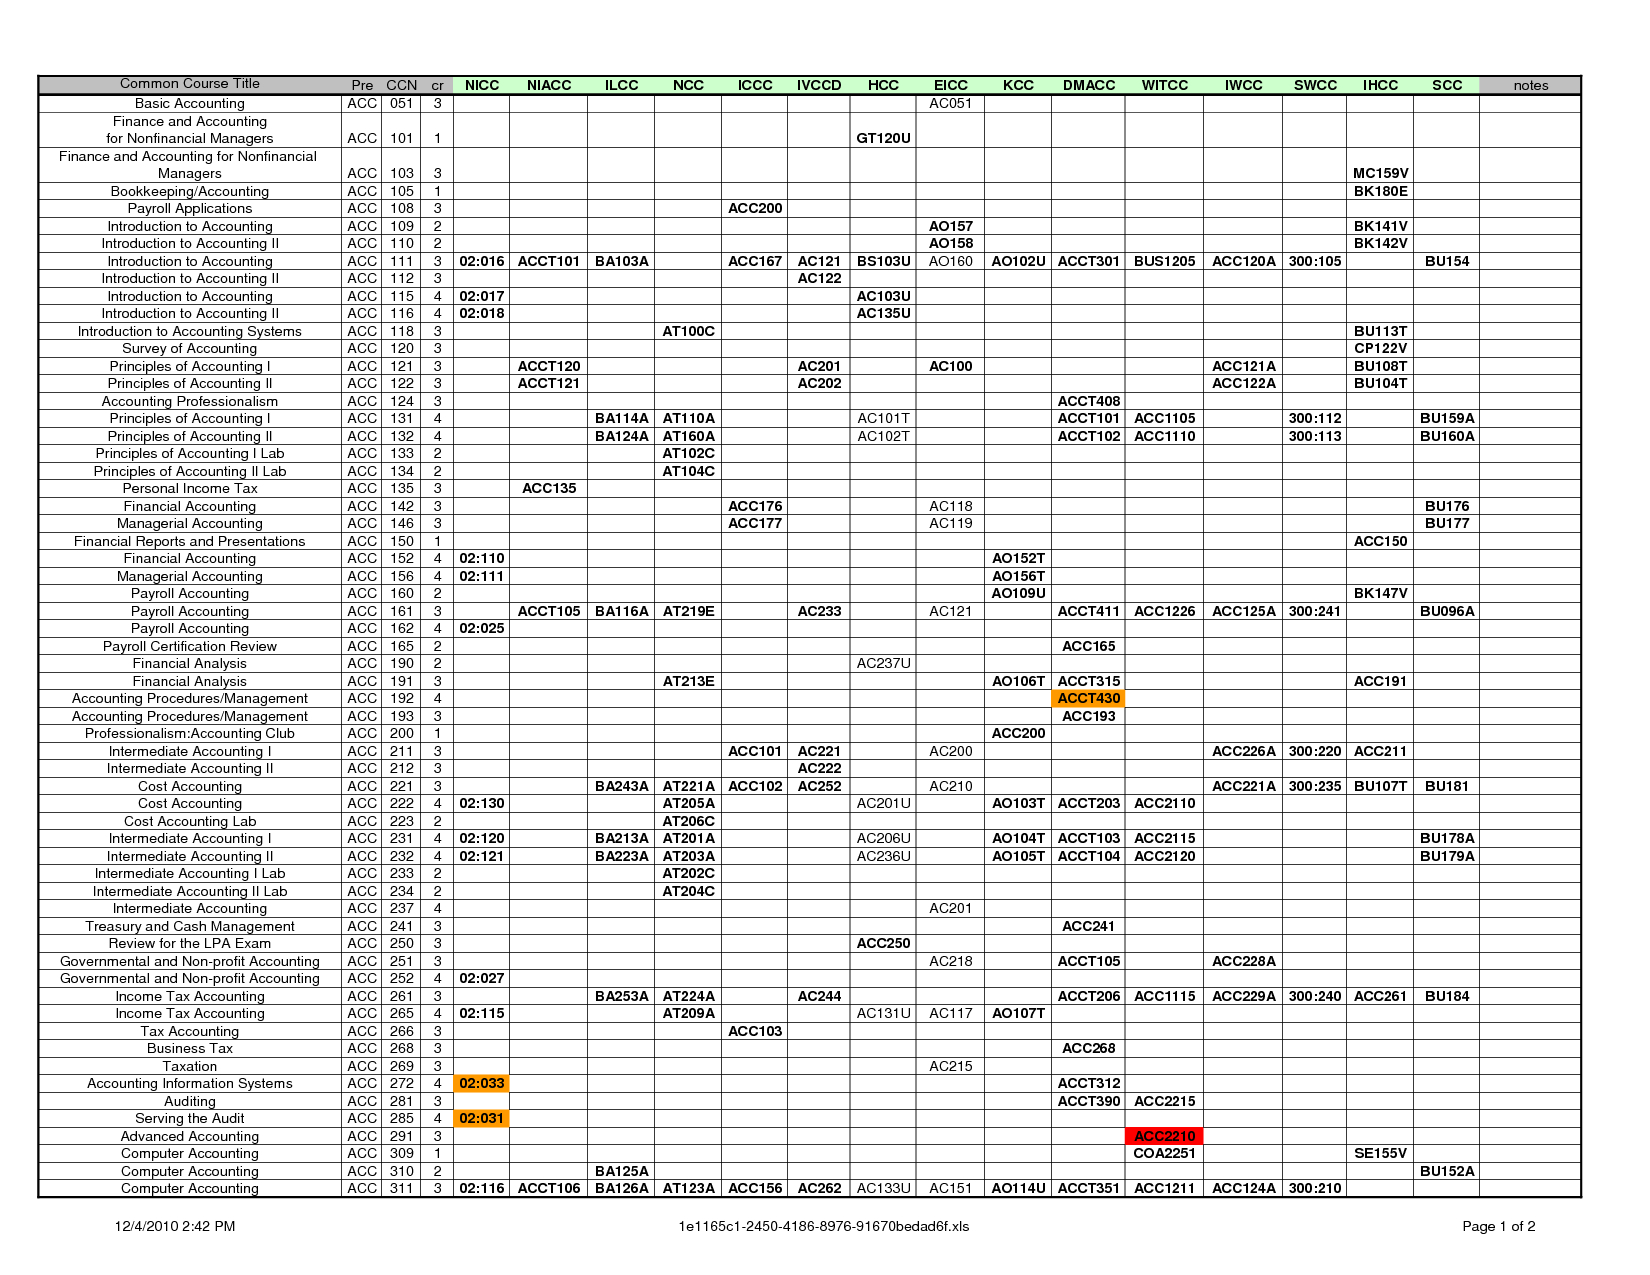 Marketing Accounting Spreadsheet Free Intended For Accounting Spreadsheet Free